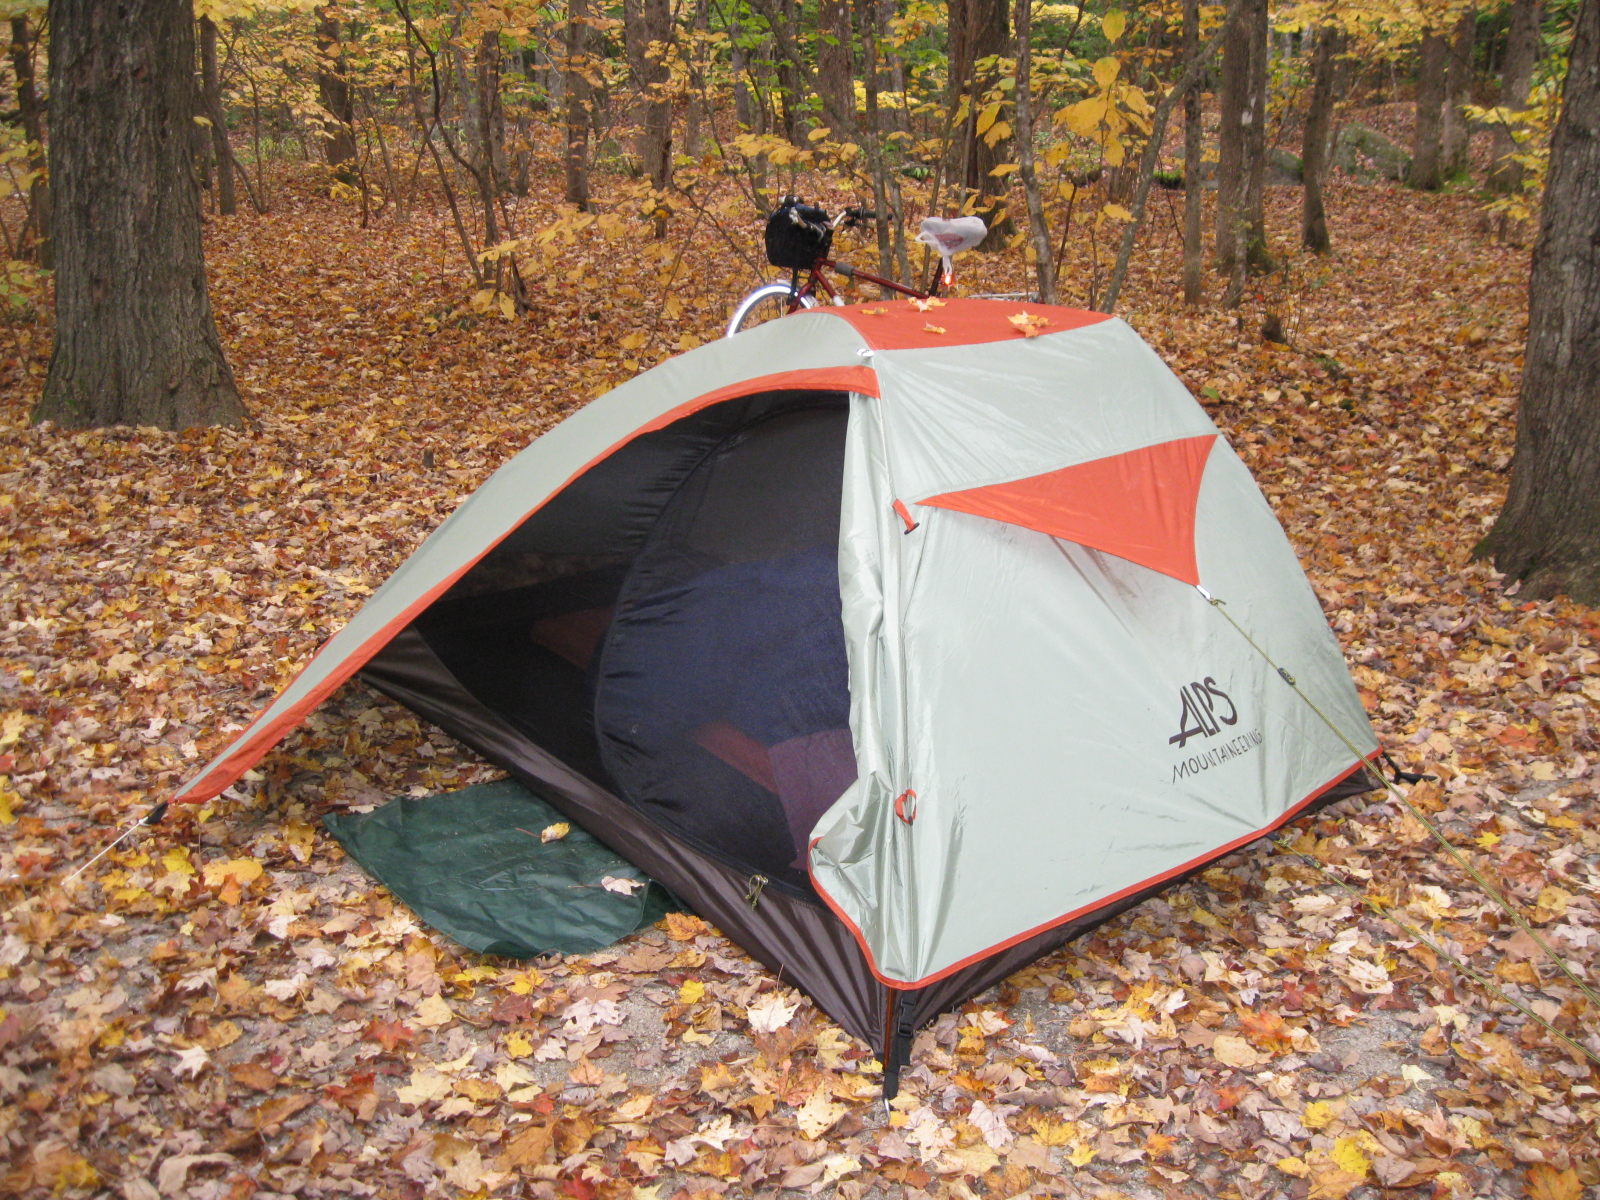 ... with a green fly by Sierra Trading Post $130 right now//.sierratradingpost.com/alps-mountaineering-zenith-2-al-tent -2-person-3-season~p~1480d/ & BWCA REI QuarterDome vs Kelty TN2 Boundary Waters Gear Forum